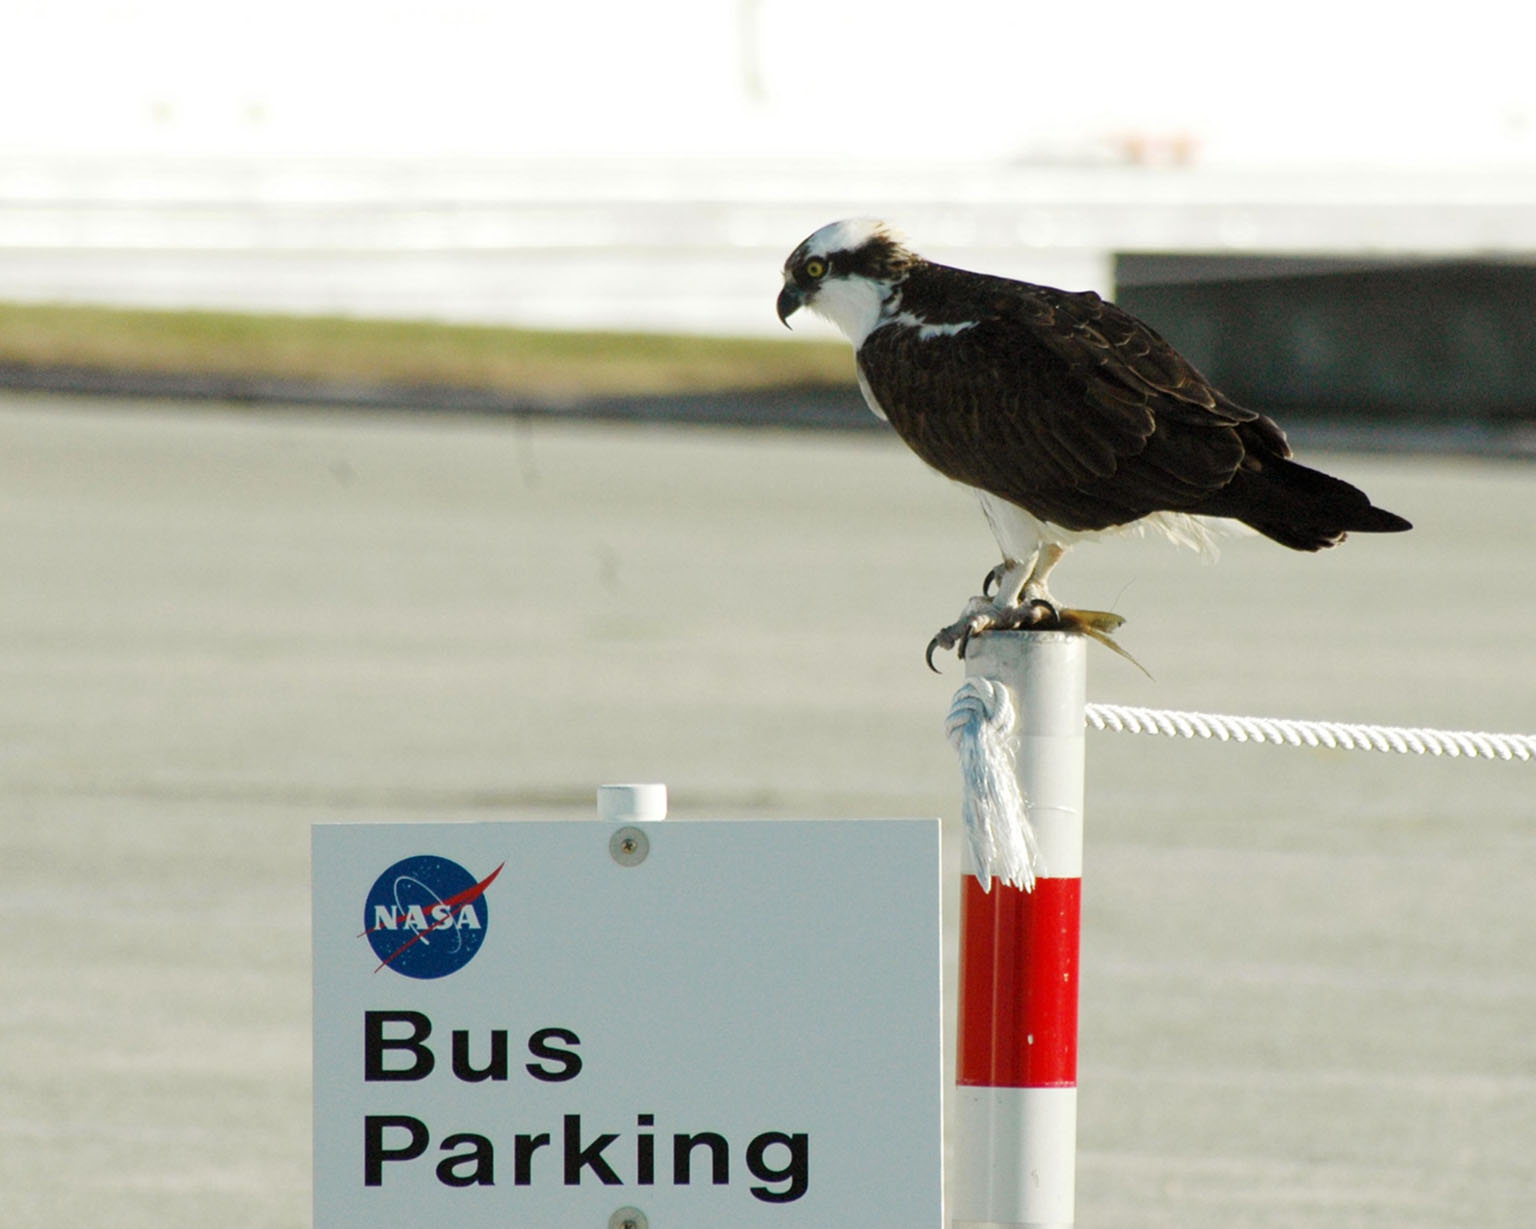 KENNEDY SPACE CENTER, FLA. -- A male Osprey perches atop a stanchion near the Kennedy Space Center News Center, in the Launch Complex 39 area. The bird is one of more than 500 species of birds that co-exist at the Center and the Merritt Island National Wildlife Refuge. Photo credit: NASA/Ken Thornsley